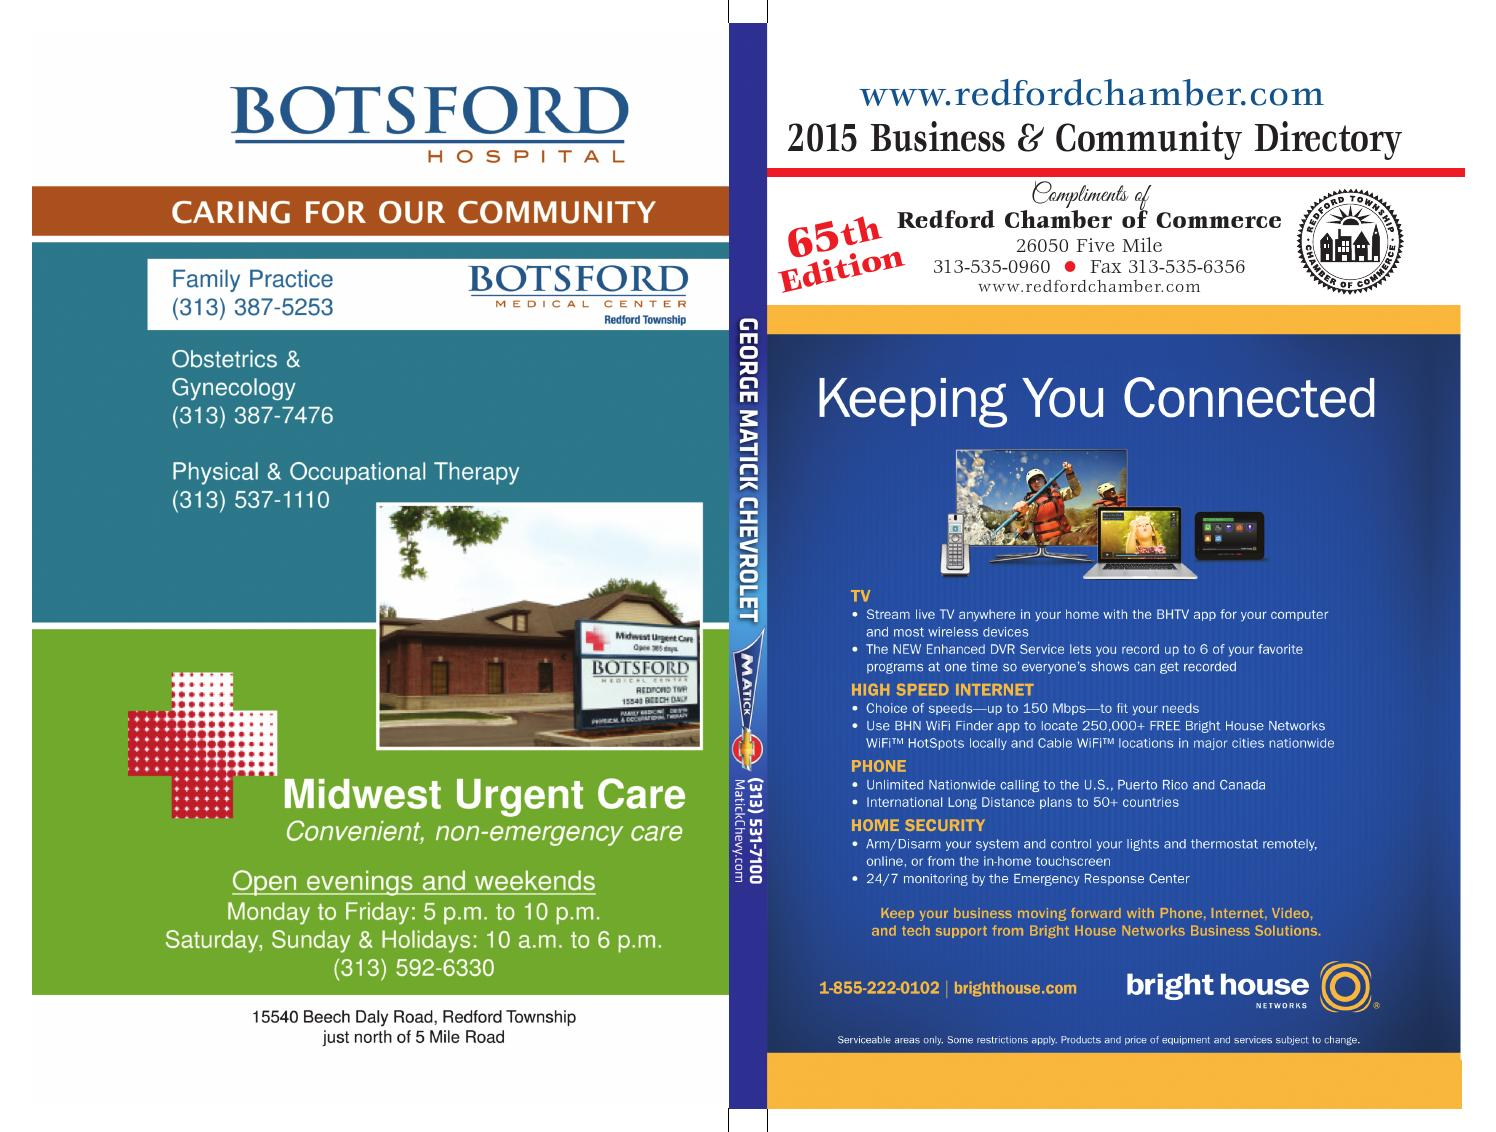 Redford Business & Community Directory 2015 by Redford Chamber of Commerce  - issuu